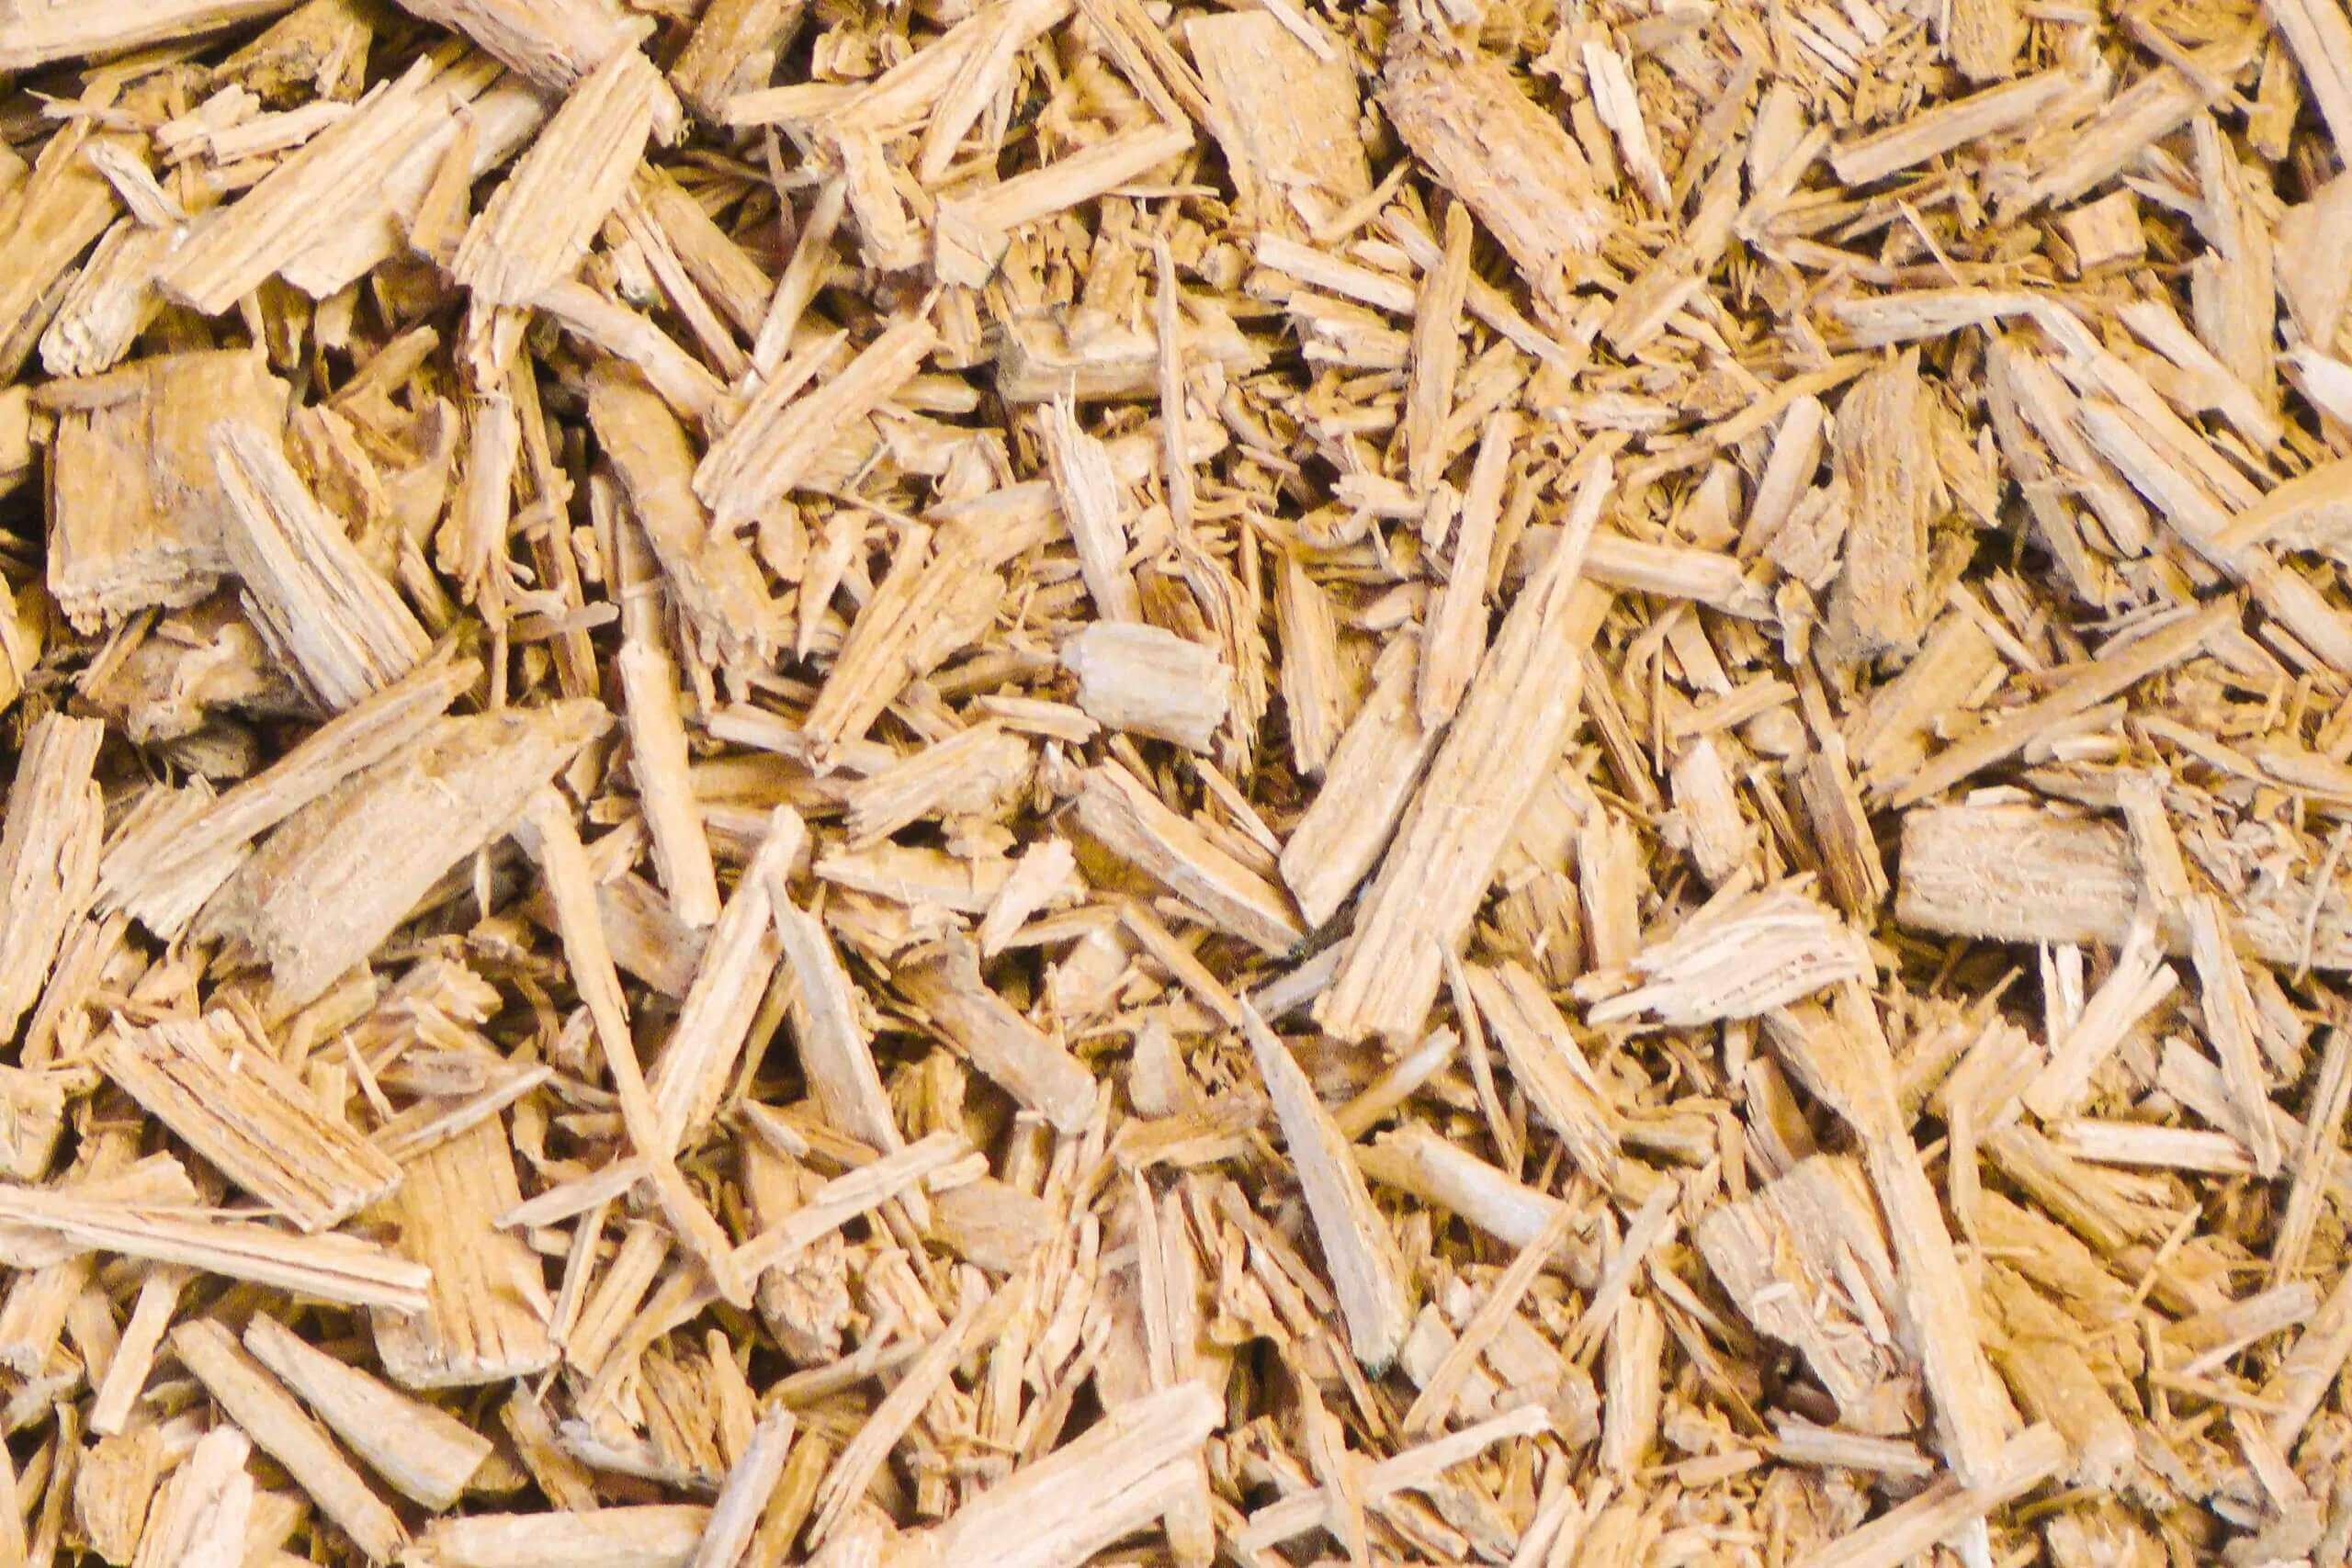 Solid wood chips